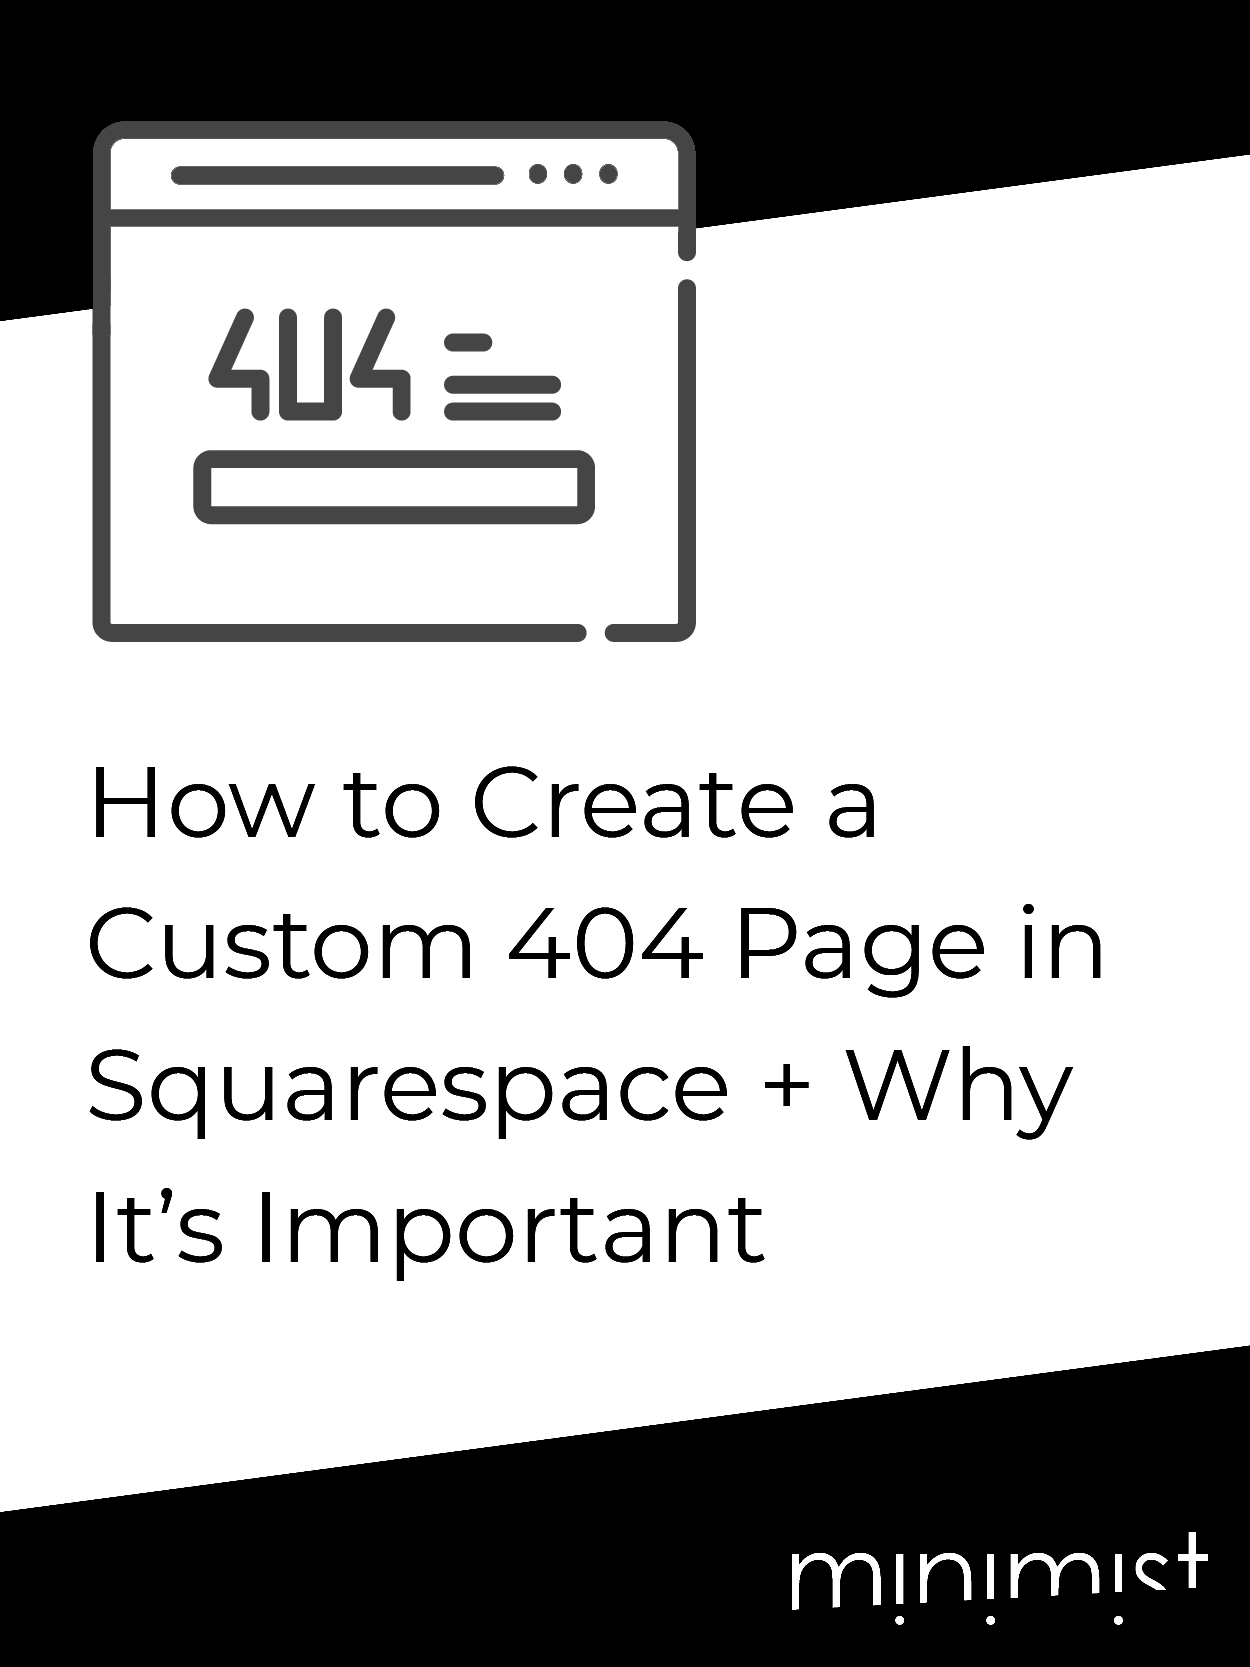 How to Create a Custom 404 Page in Squarespace and Why It's Important